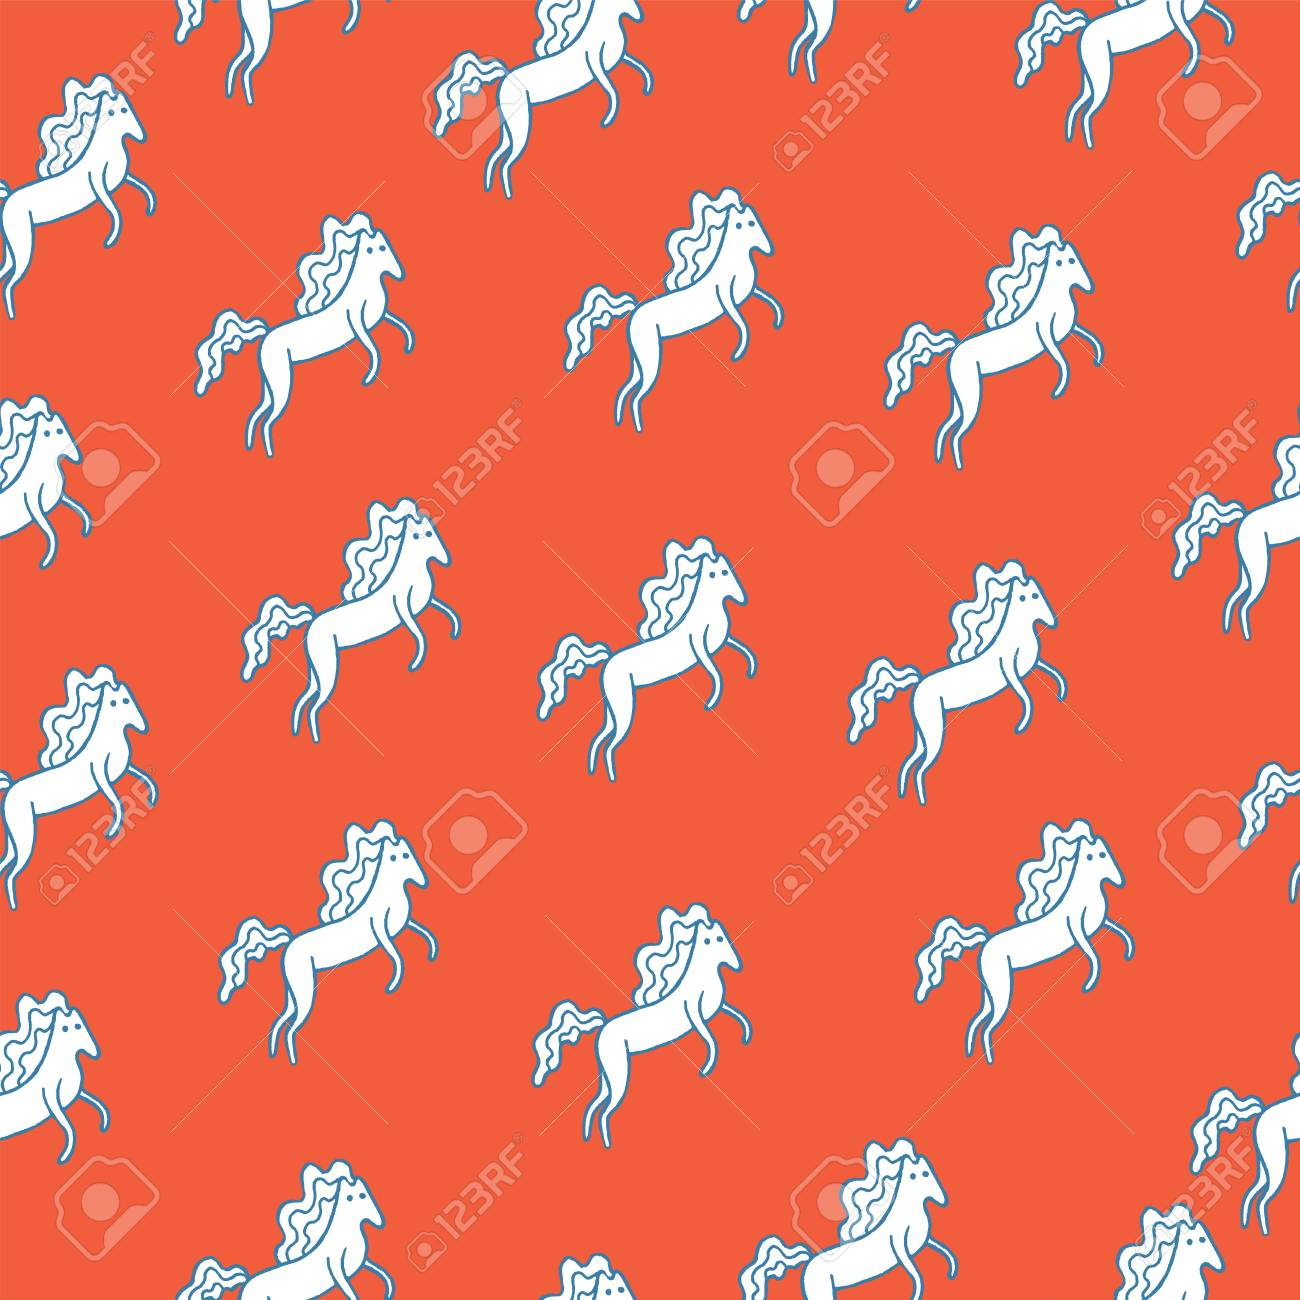 Medieval Seamless Pattern With White Horse Cartoon Doodle Wallpaper Royalty Free Cliparts Vectors And Stock Illustration Image 87218312